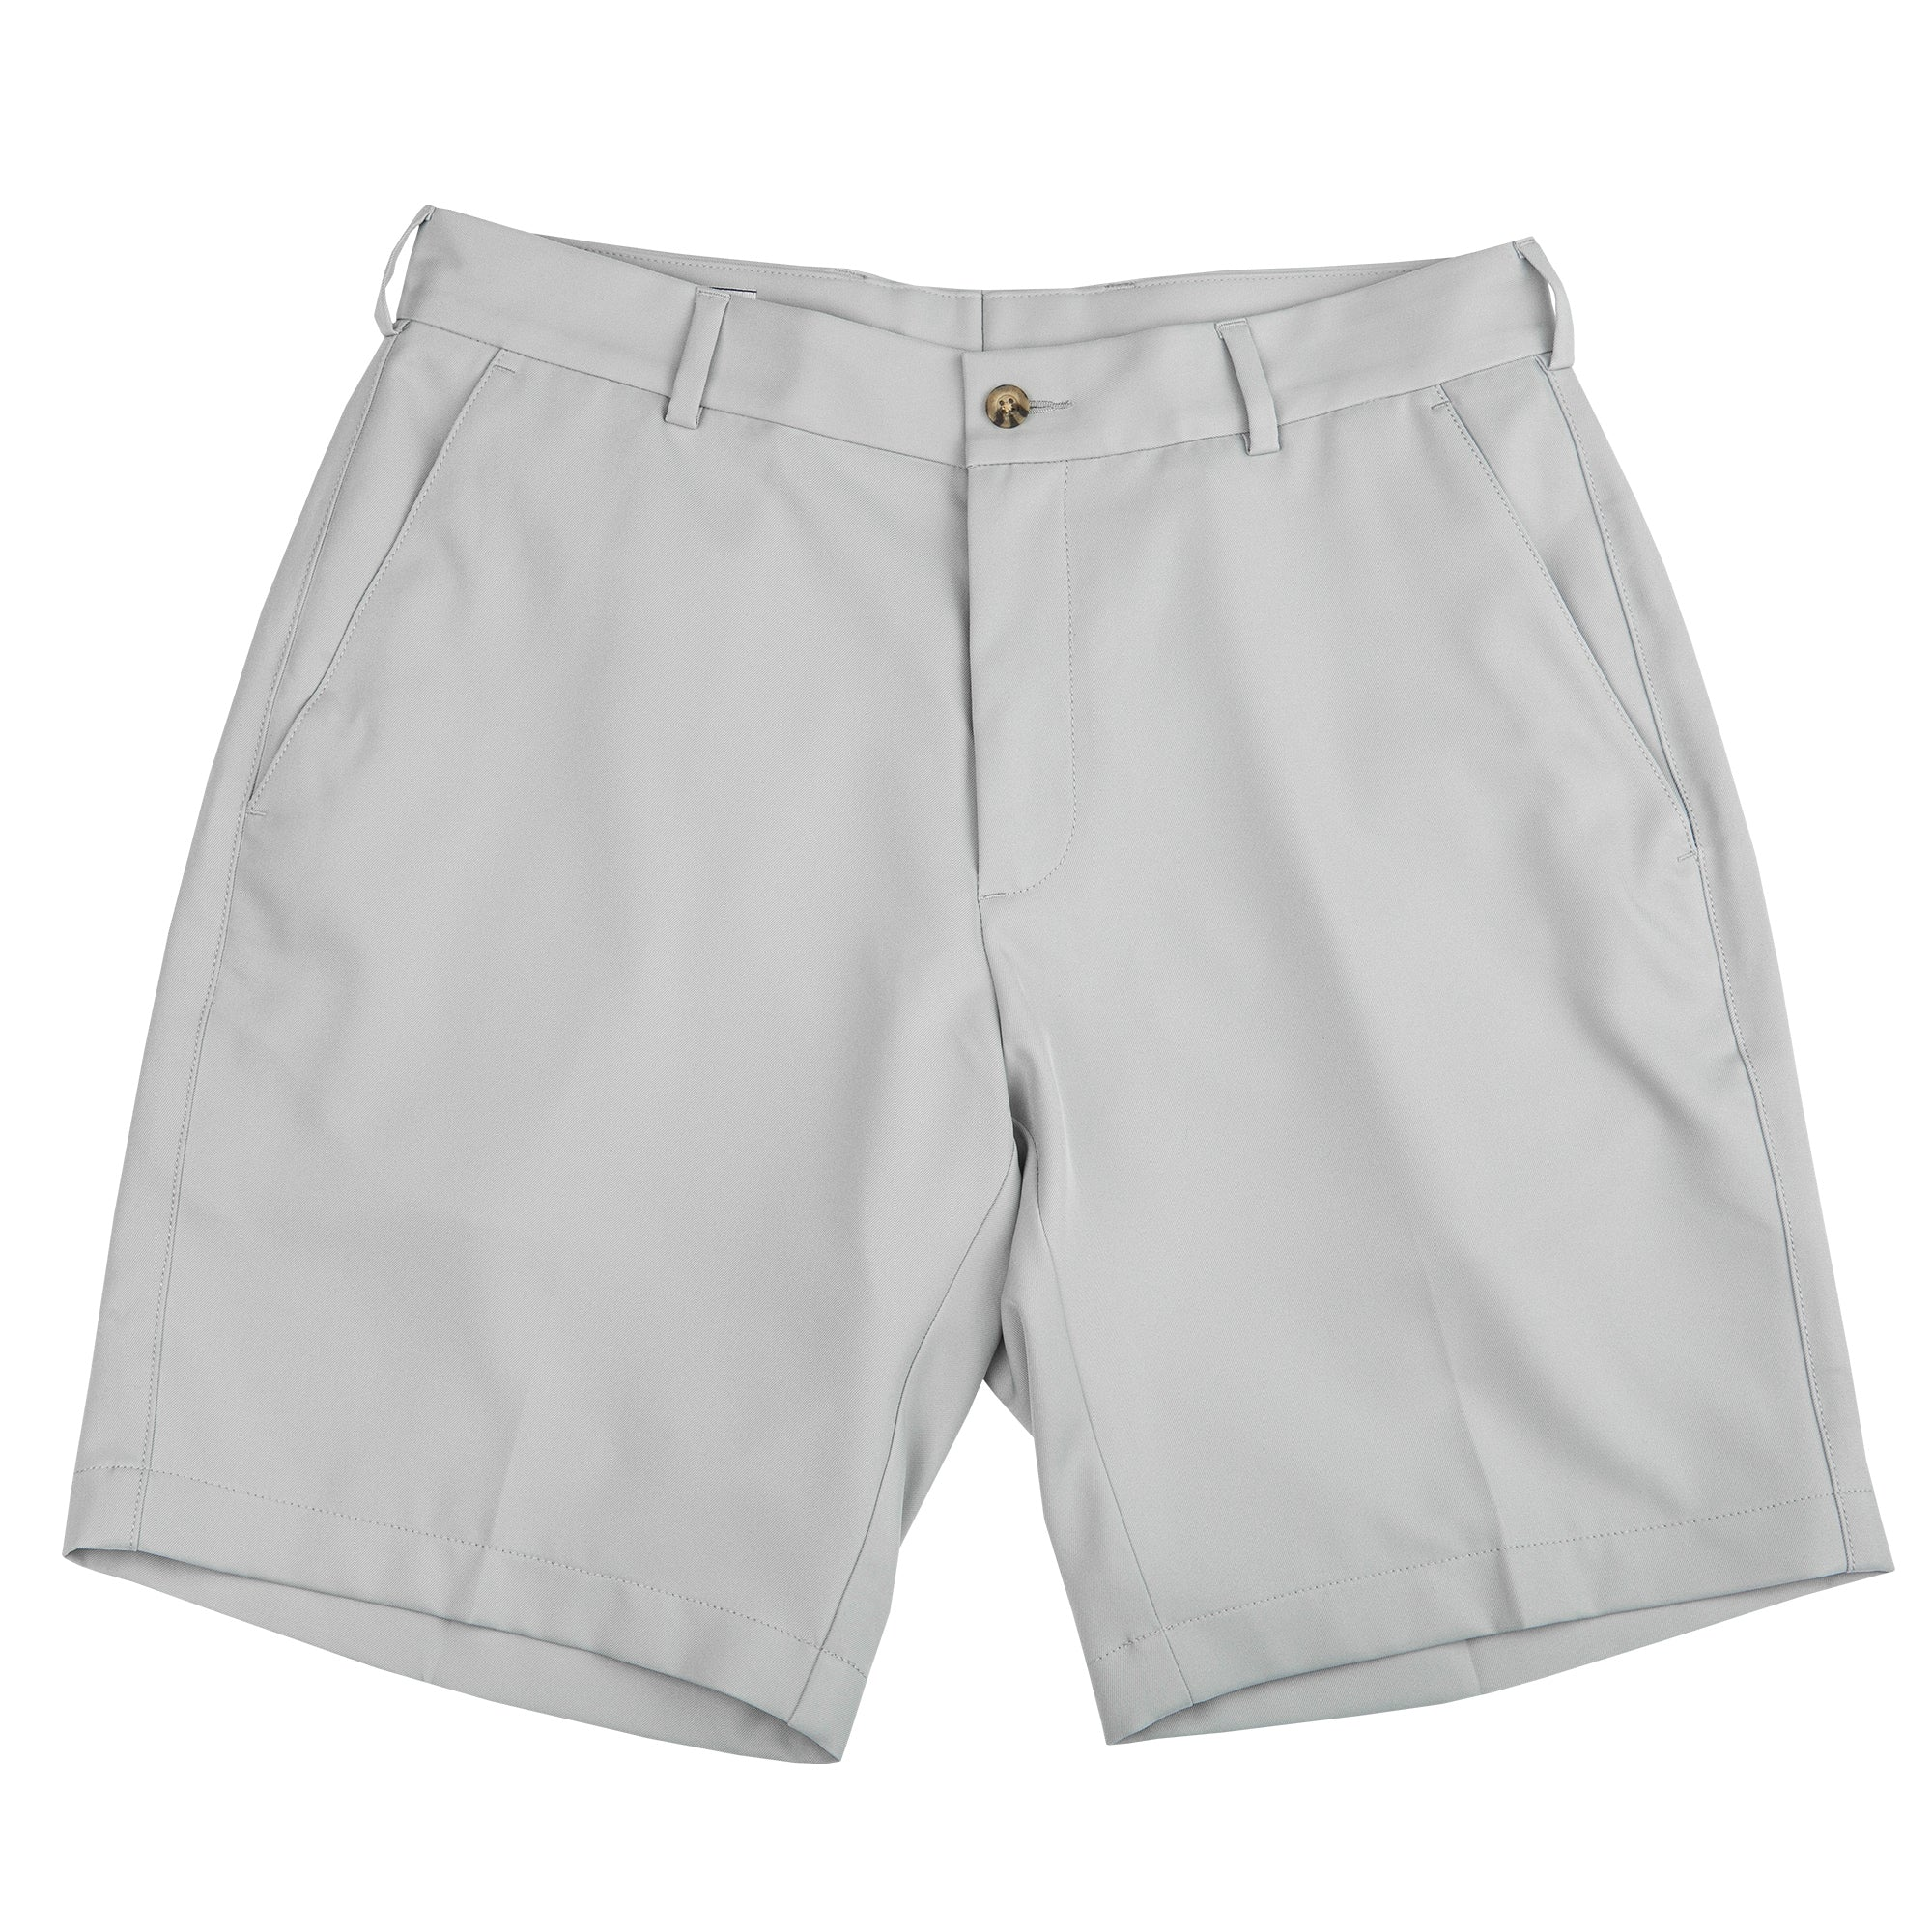 Peachtree Performance Short - Grey - OnwardReserve